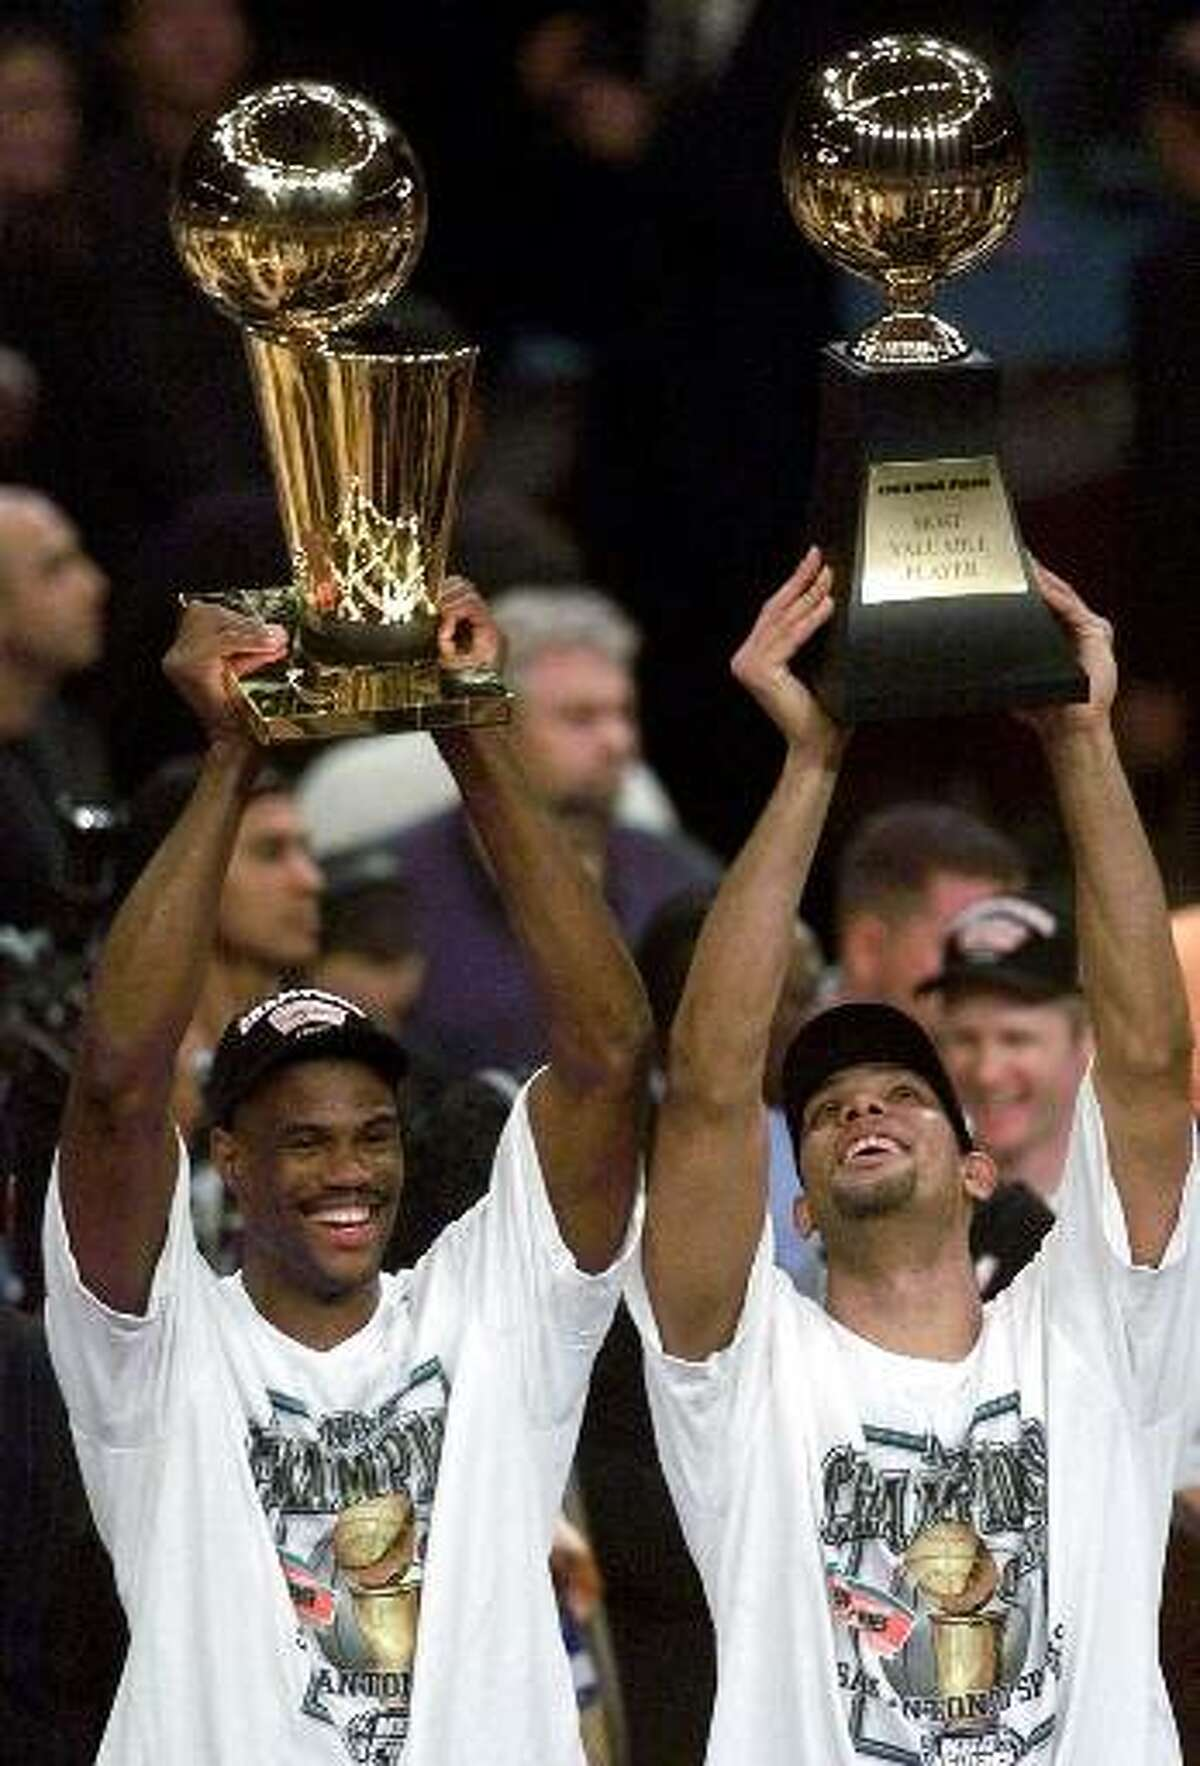 San Antonio Spurs' David Robinson, left, holds up the NBA Championship trophy as teammate Tim Duncan holds up the Most Valuable Player trophy after defeating the New York Knicks 78-77 in Game 5 of the 1999 NBA Finals Friday, June 25, 1999, at New York's Madison Square Garden. (AP Photo/Mark Lennihan)